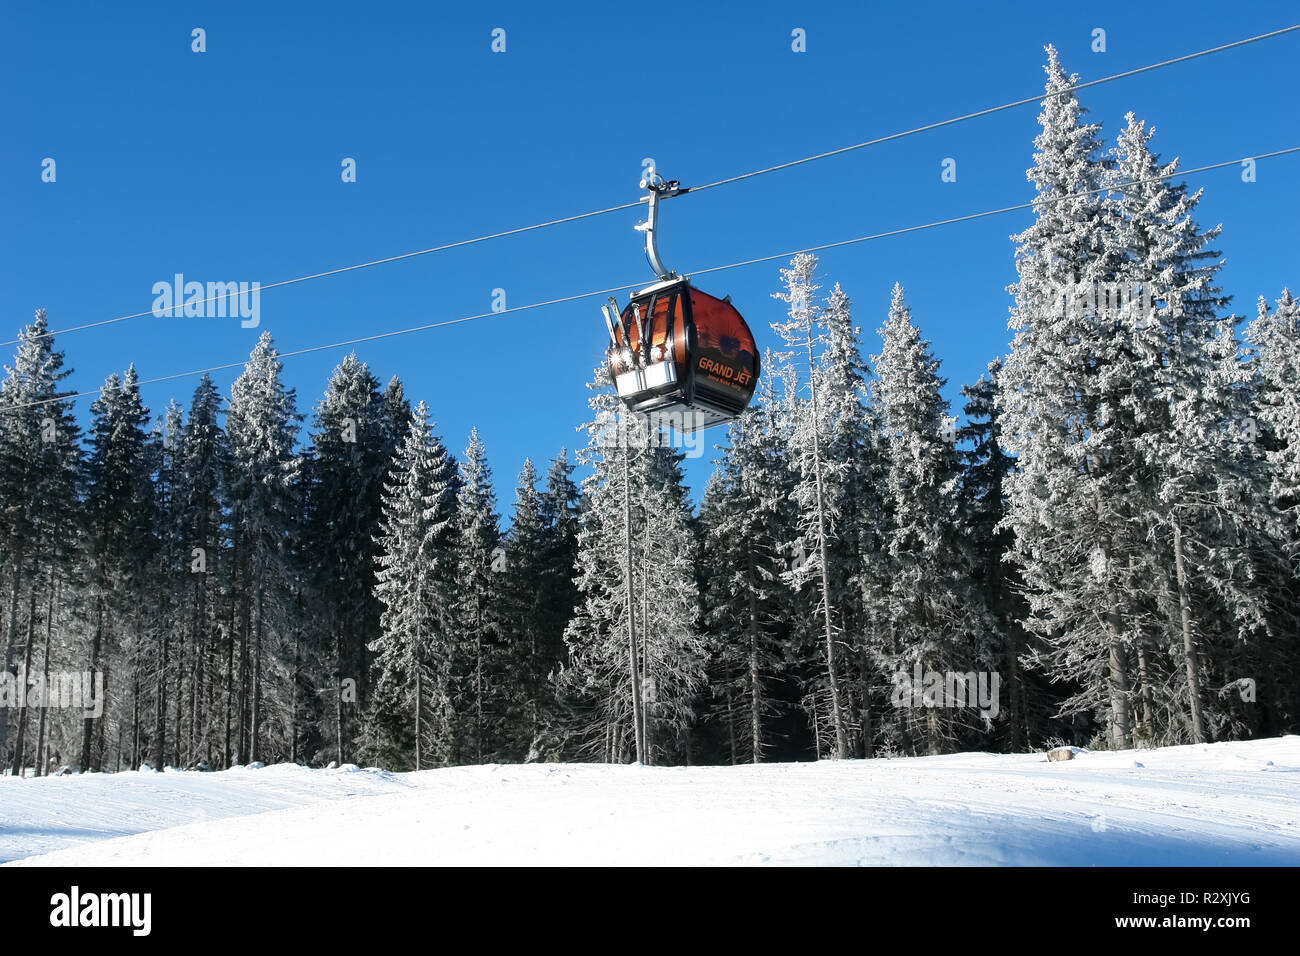 Jasna, Slovakia - January 25, 2017: Cabin of cableway on a background of snow-covered fir trees on a sunny day on the slopes of the Jasna ski resort,  - Stock Image